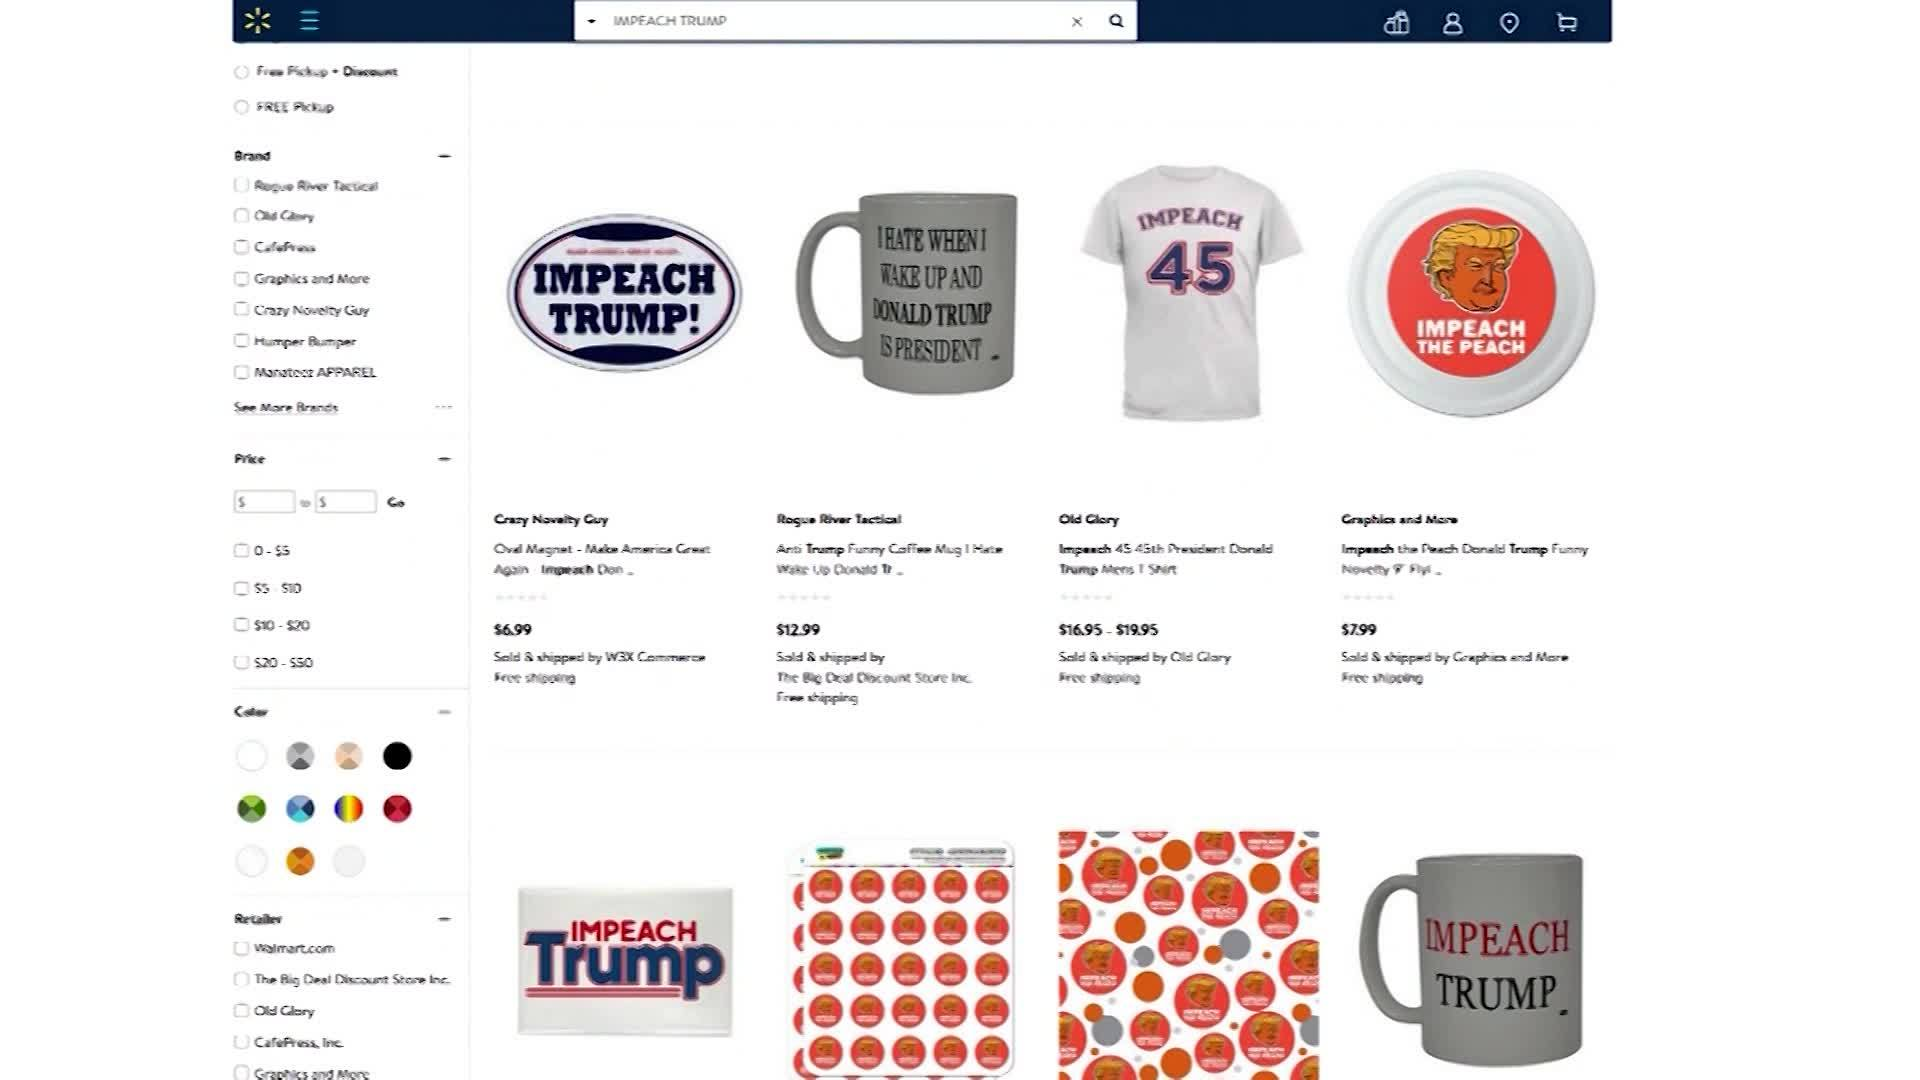 Walmart boycott campaign launched over 'Impeach 45' clothing